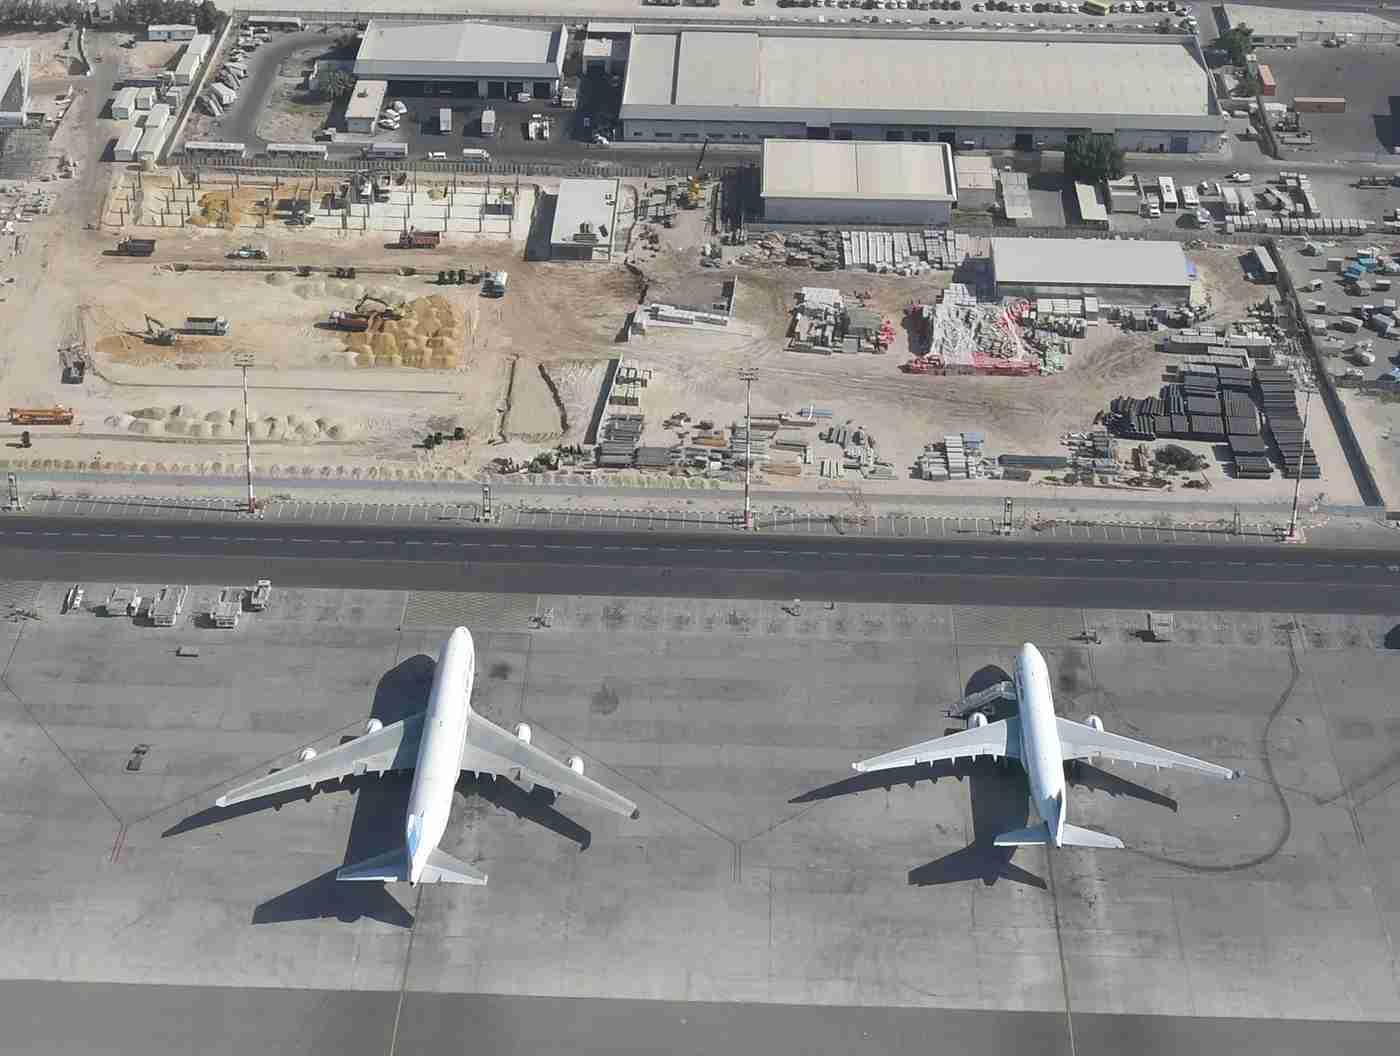 747 on the left, 777 on the right